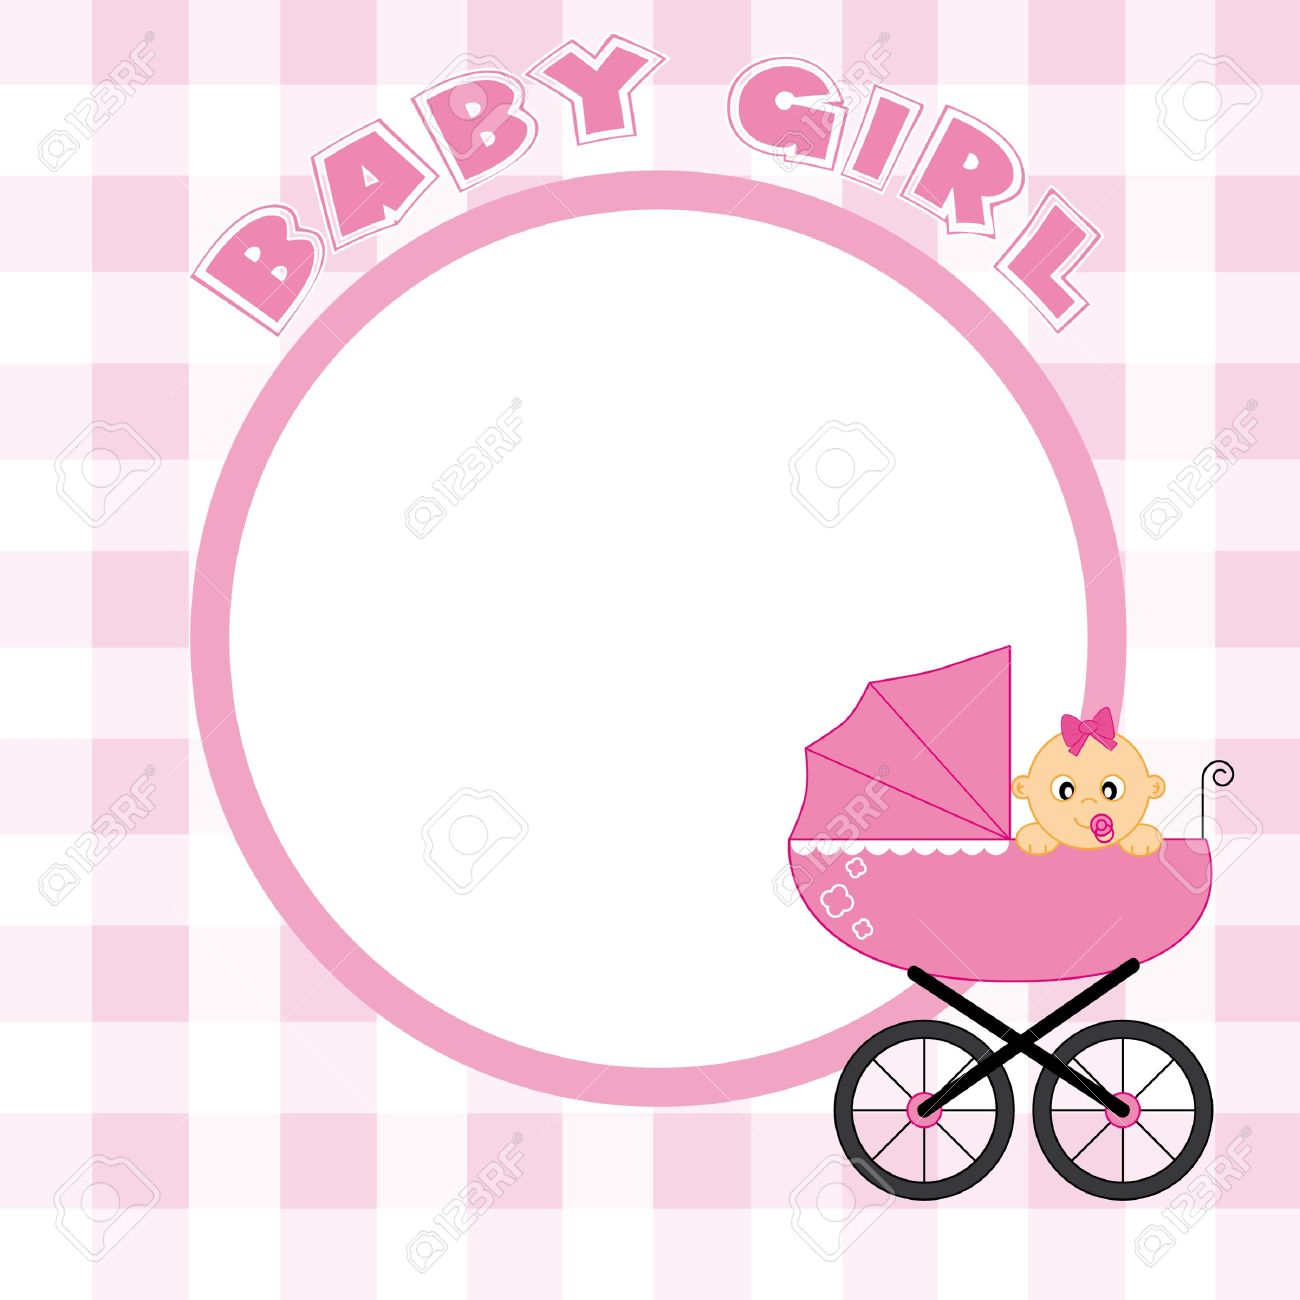 Baby girl frame for text or photo royalty free cliparts vectors baby girl frame for text or photo stock vector 9426582 jeuxipadfo Images